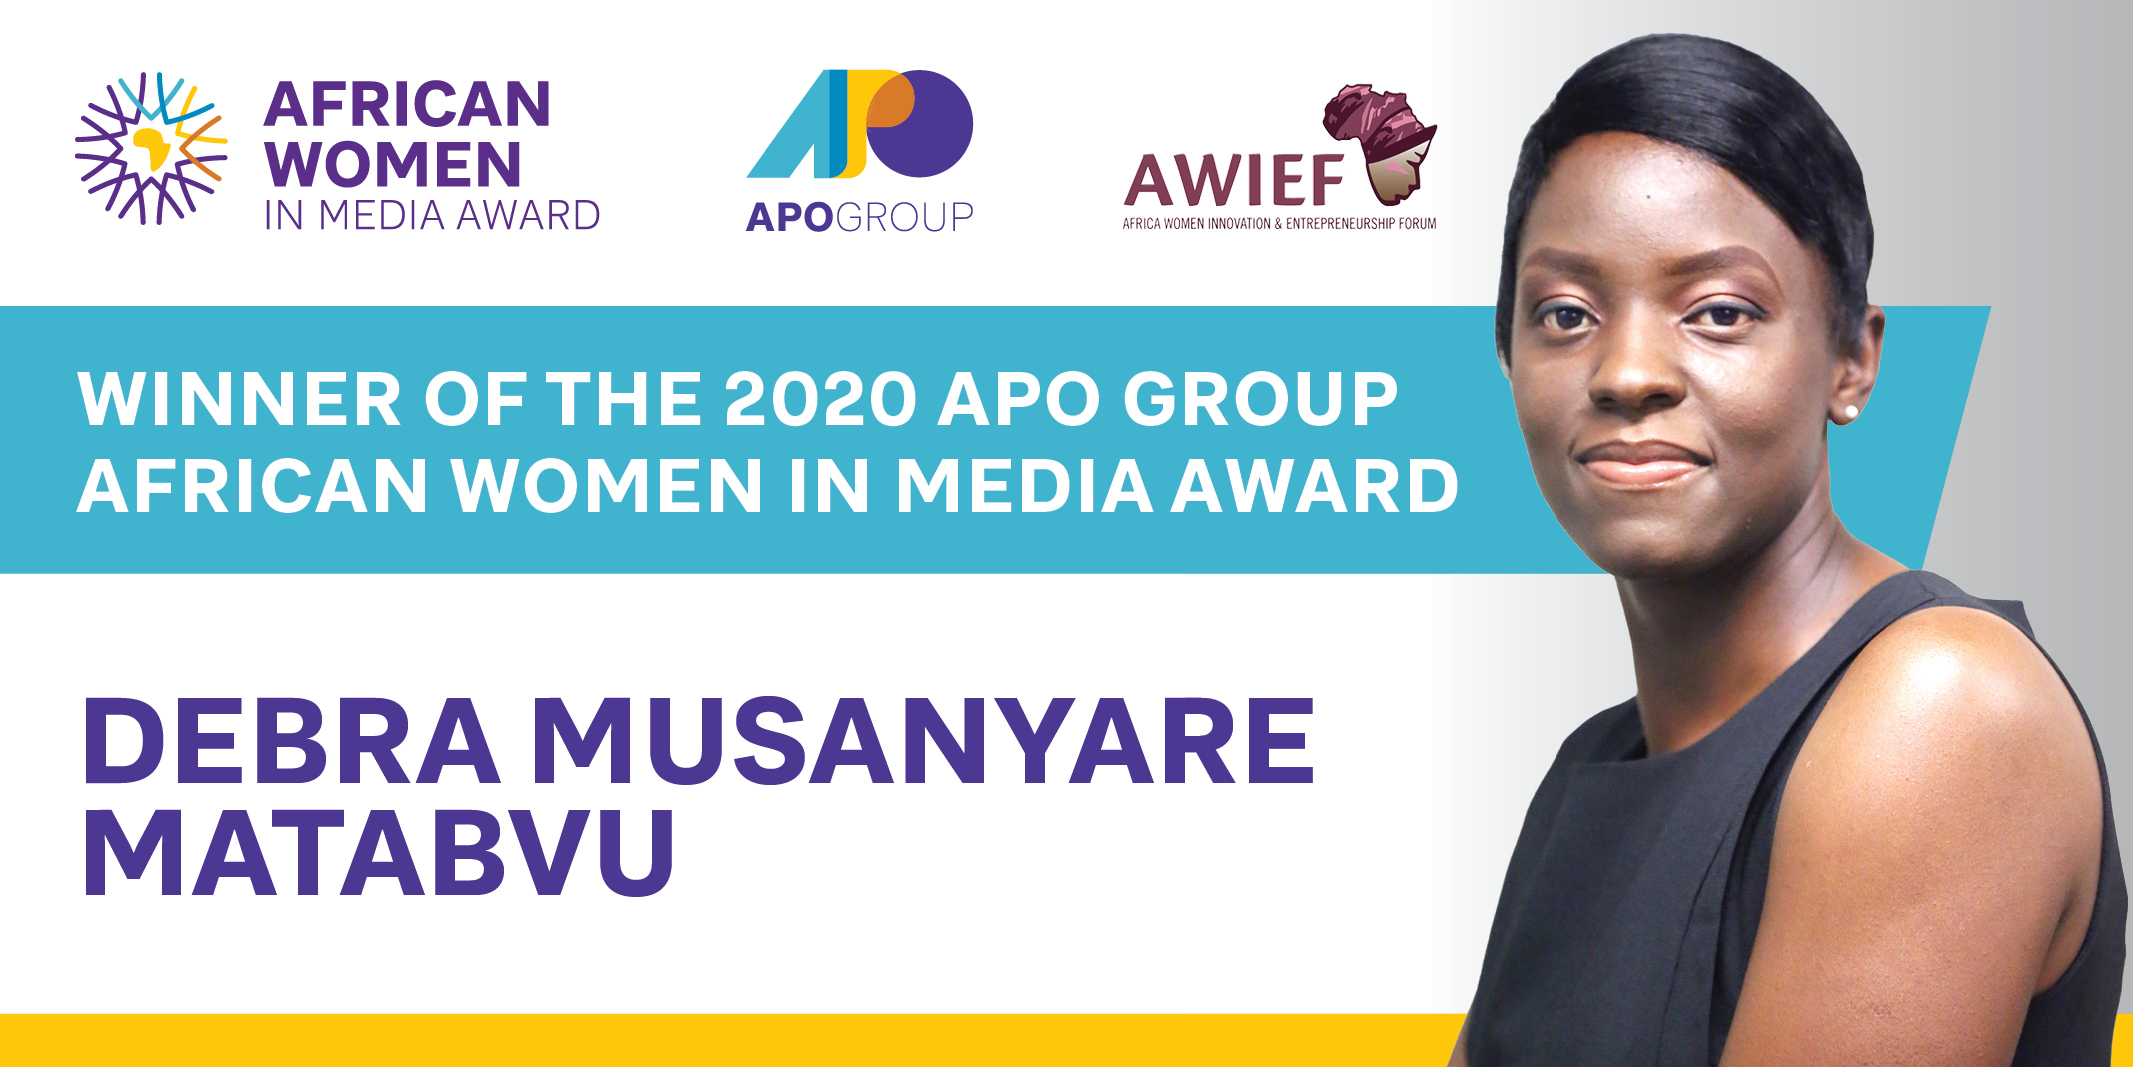 Zimbabwean, Debra Matabvu wins 2020 APO African Women in Media Award